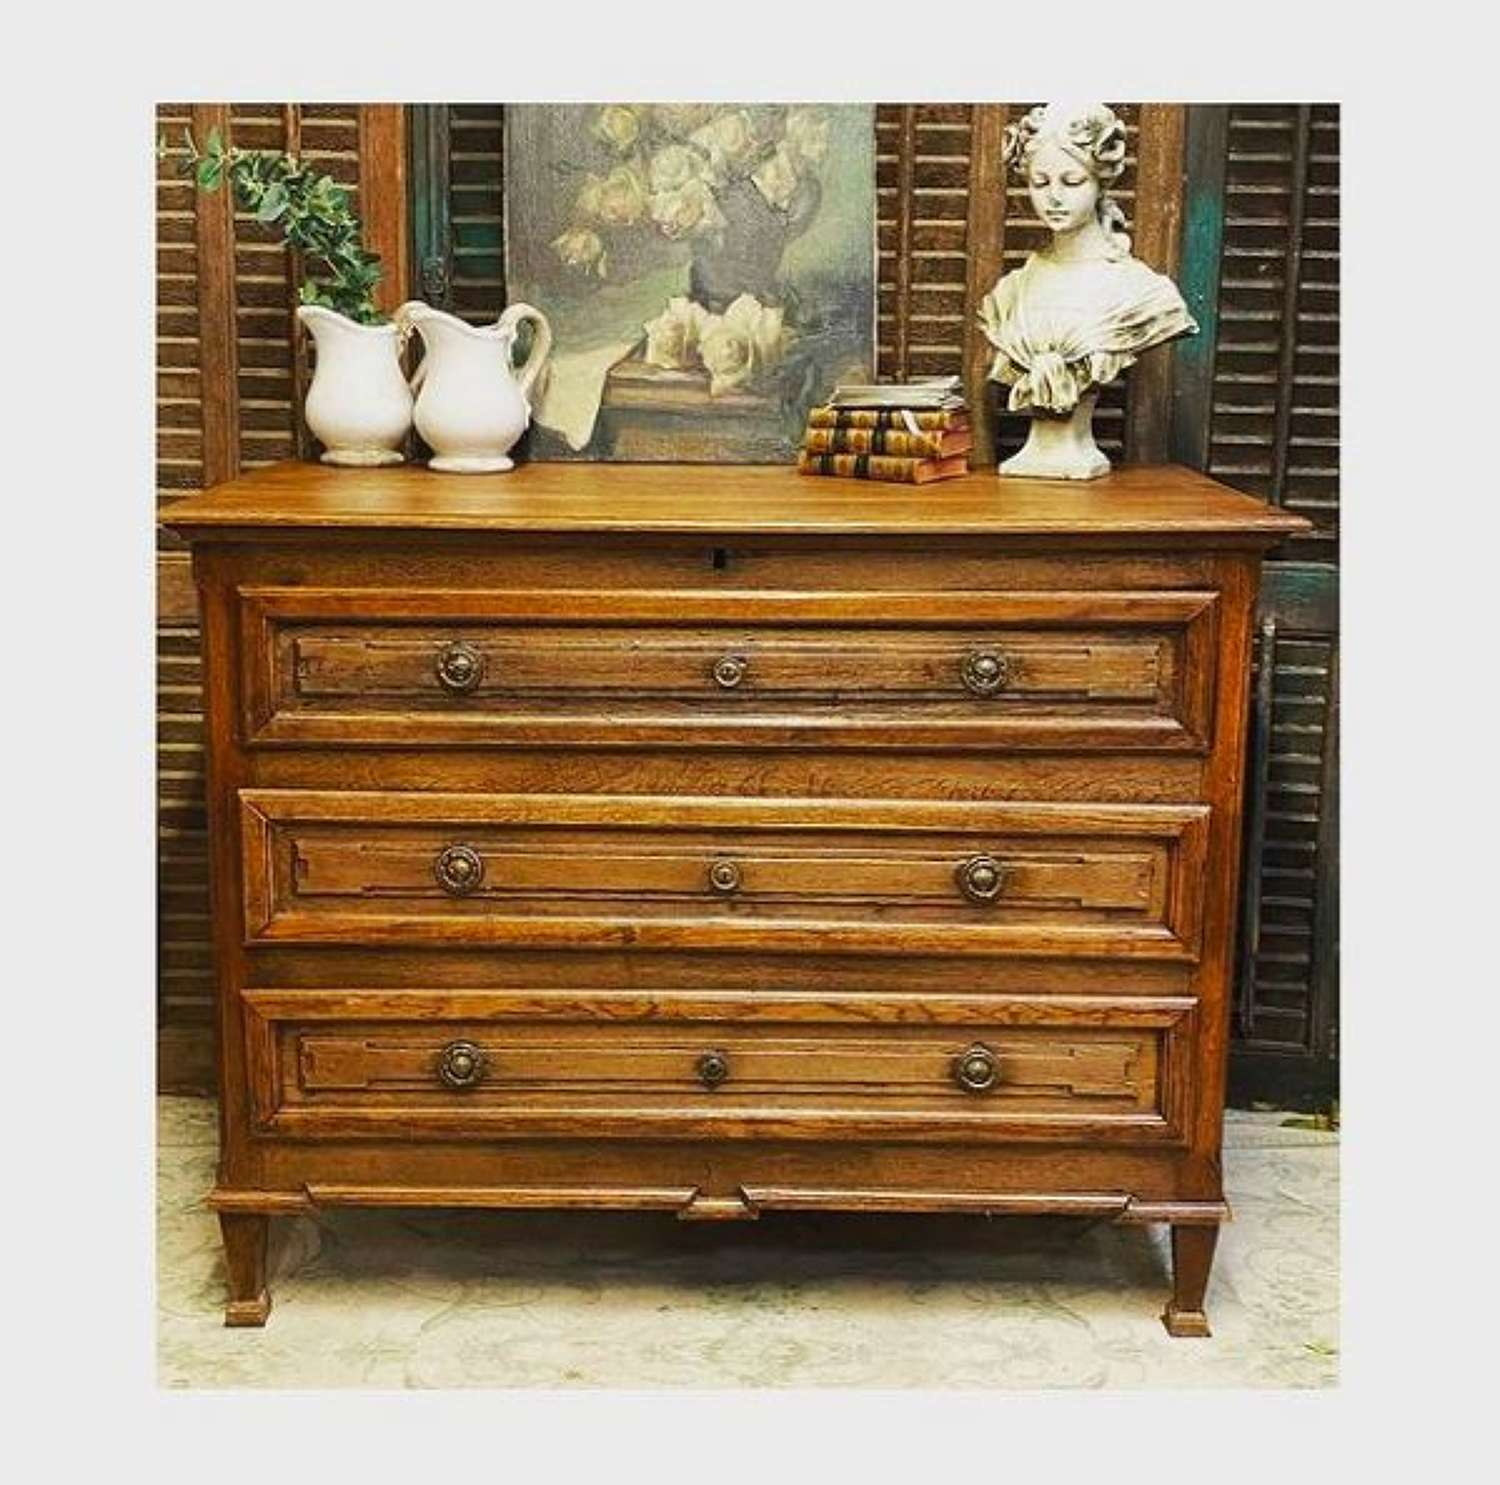 French chest of drawers early 19th century